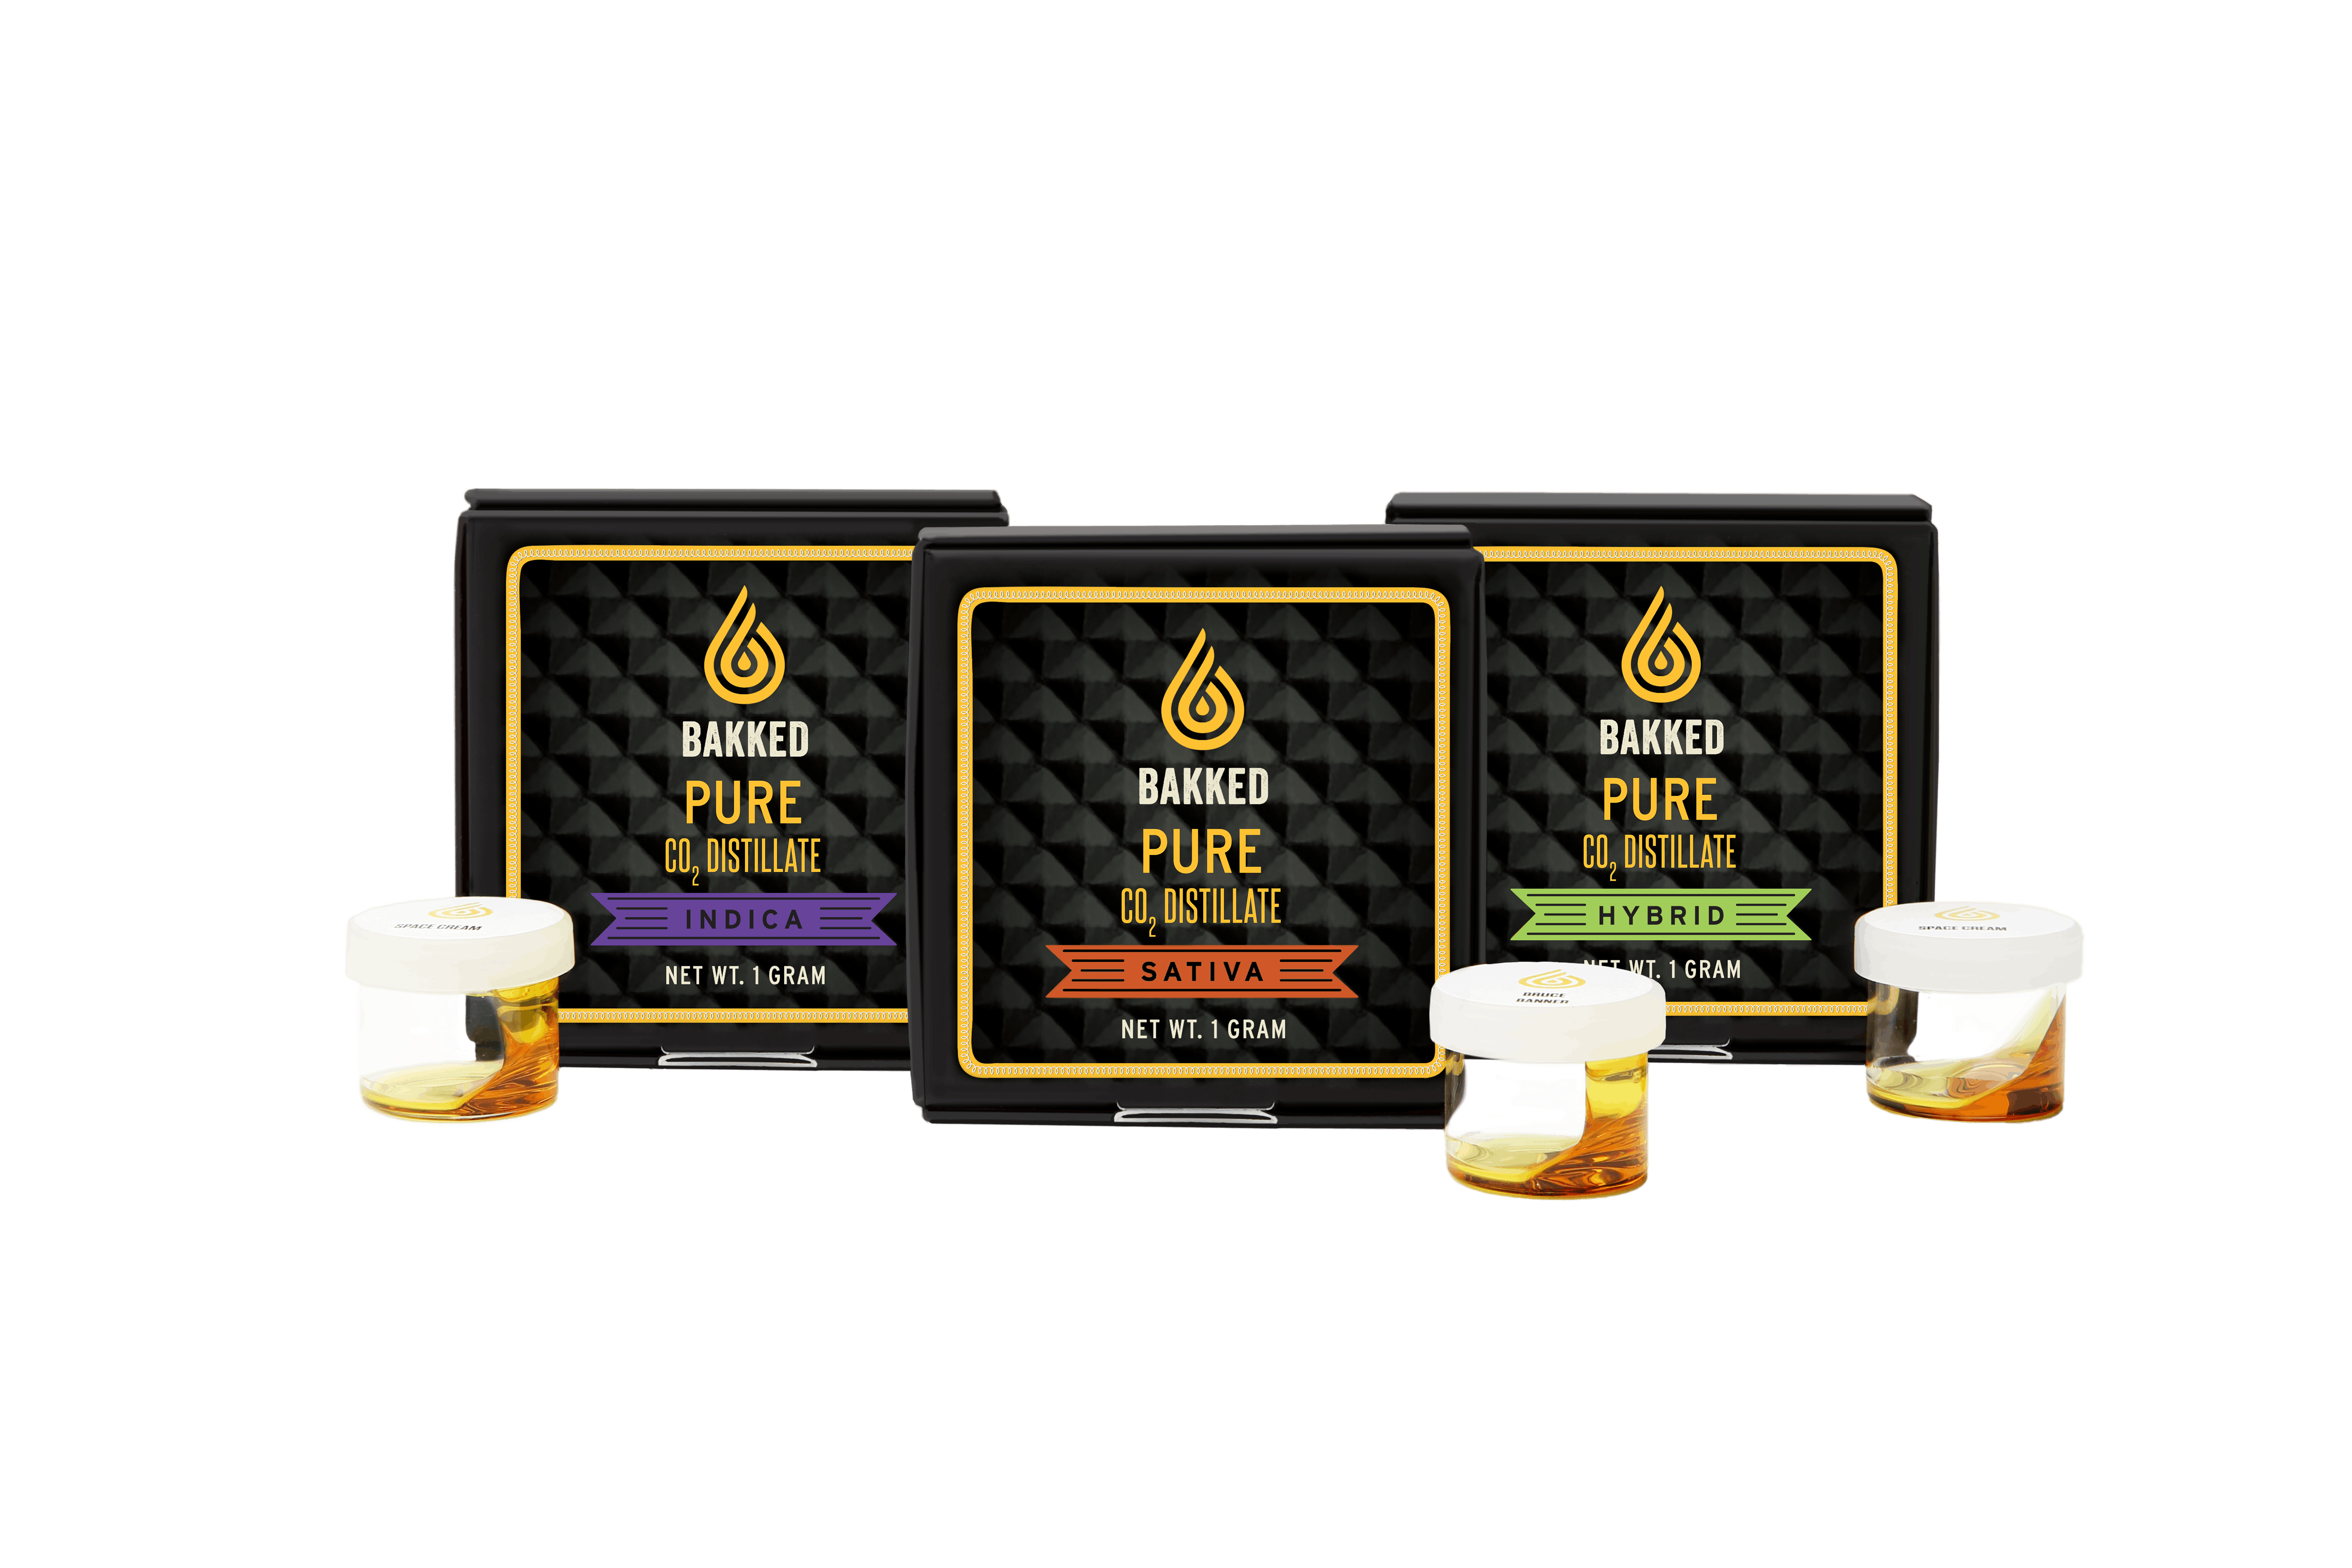 concentrate-bakked-hybrid-pure-co2-distillate